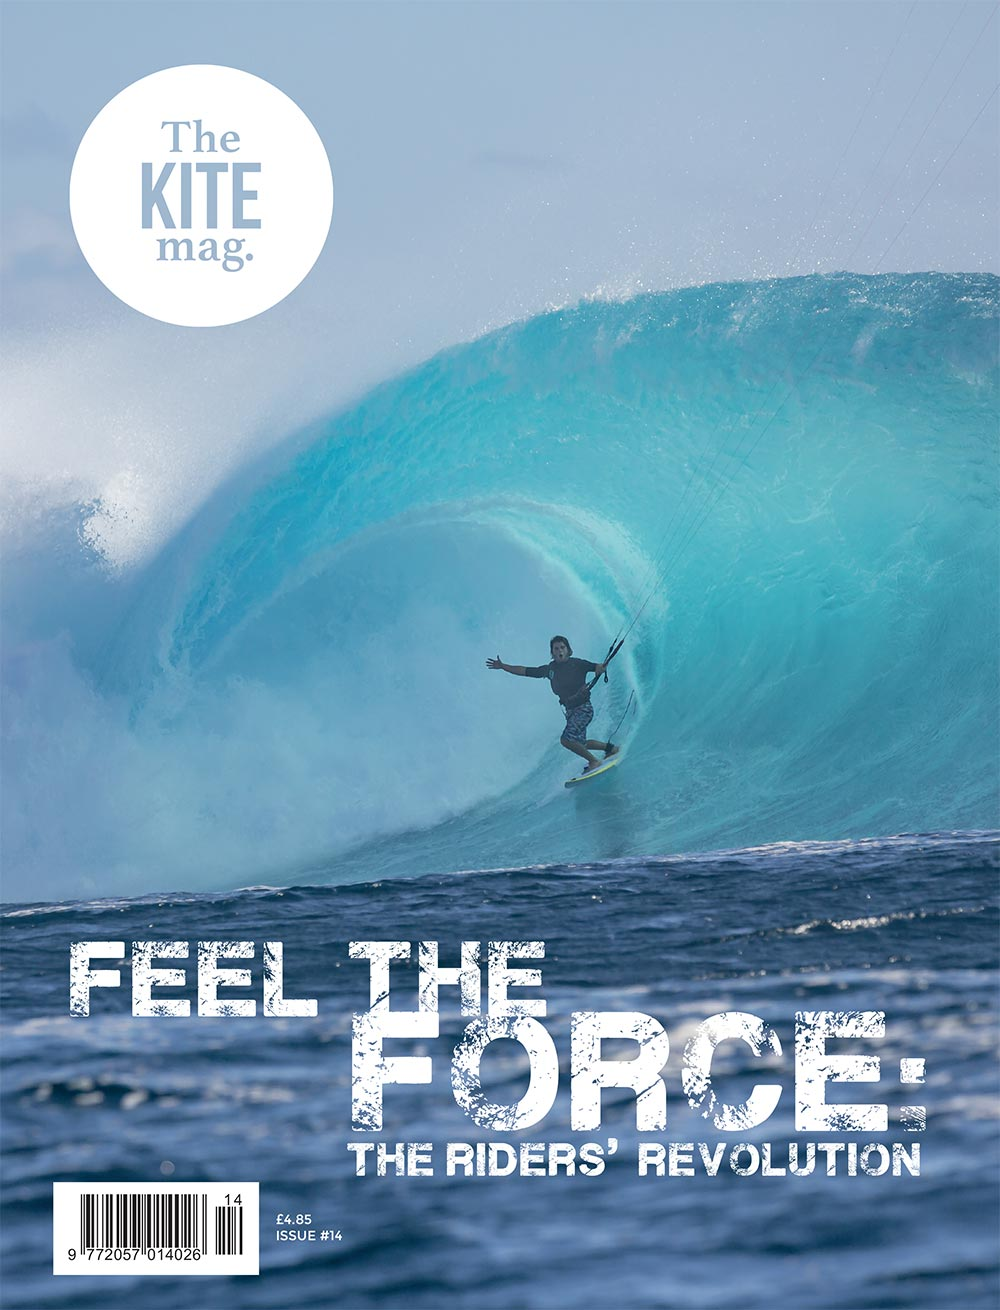 TheKiteMag 14 Cover final - TheKiteMag issue #14